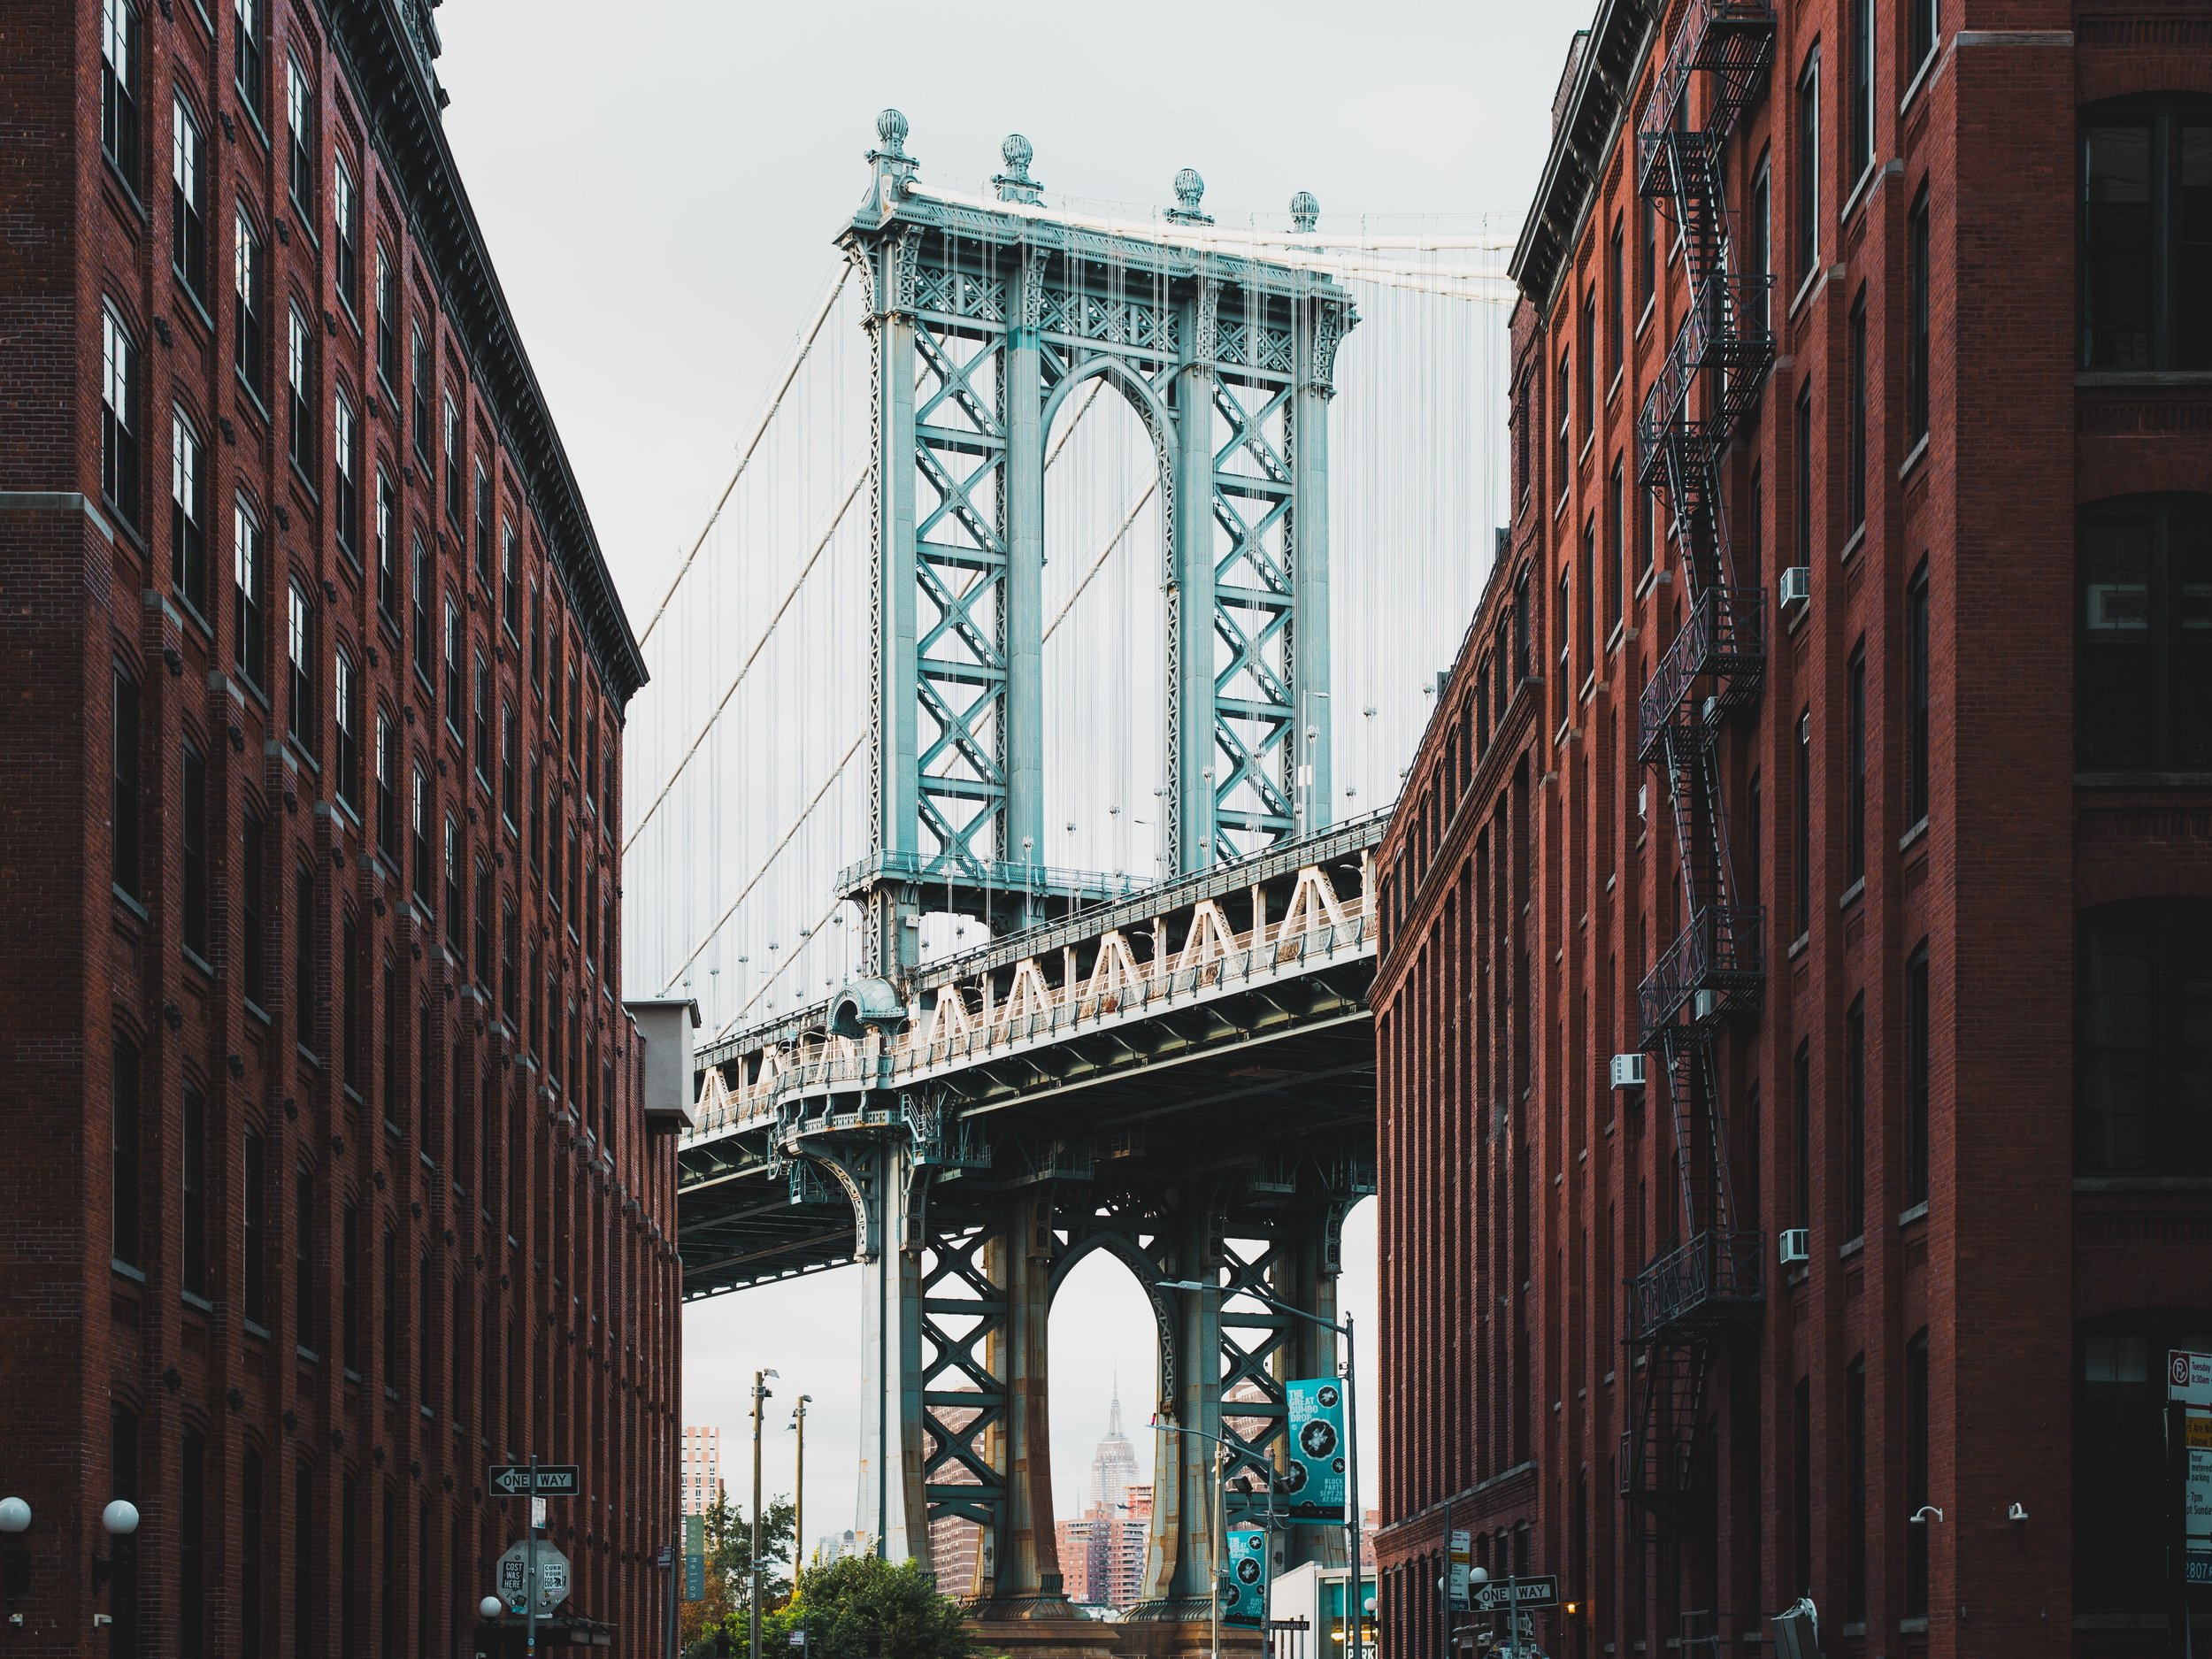 manhattanbridge dumbo where.jpg